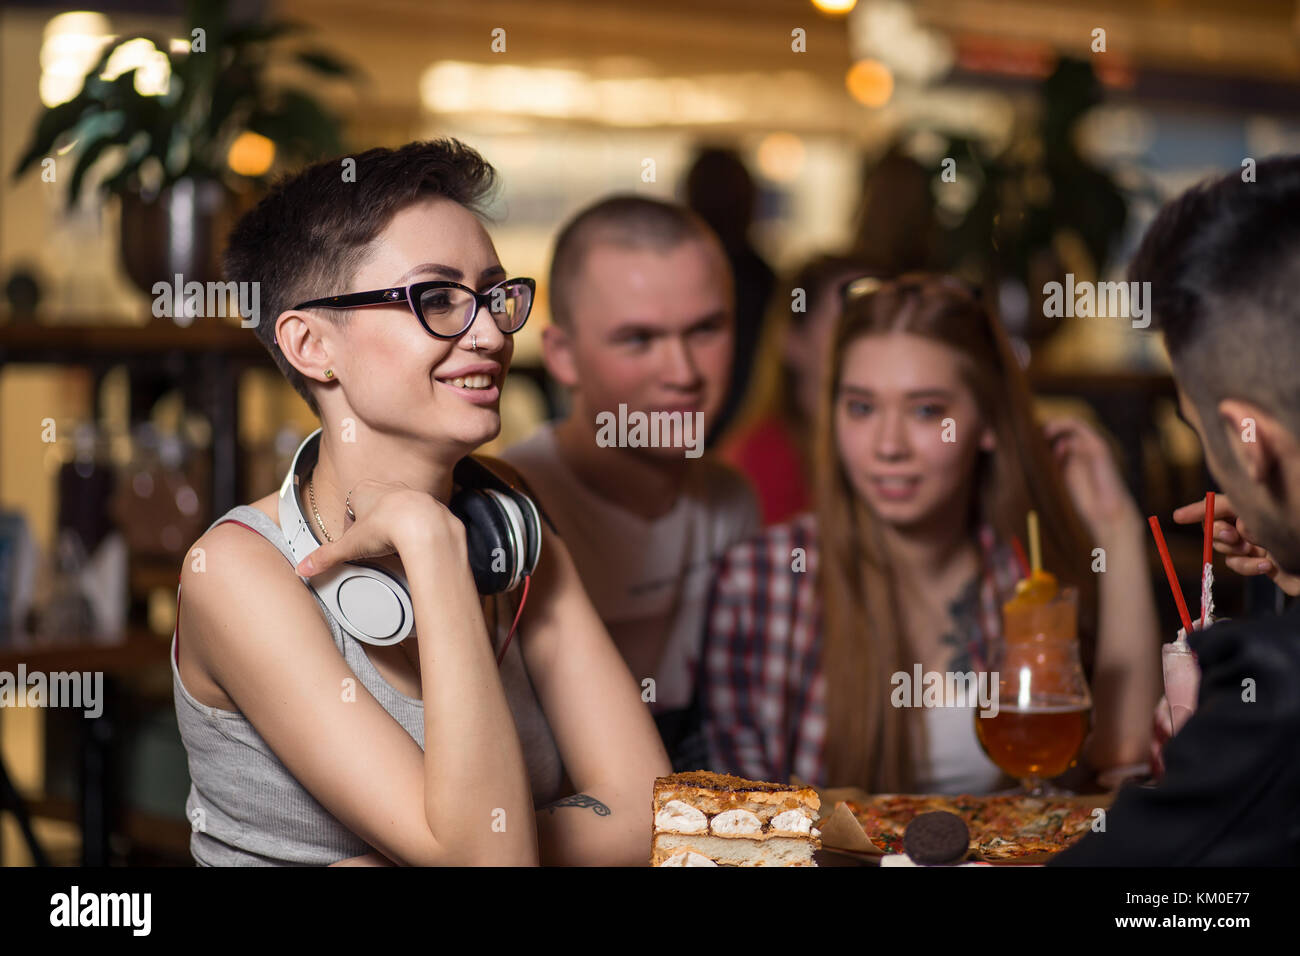 People Drinking Coffee in cafe Concept - Stock Image